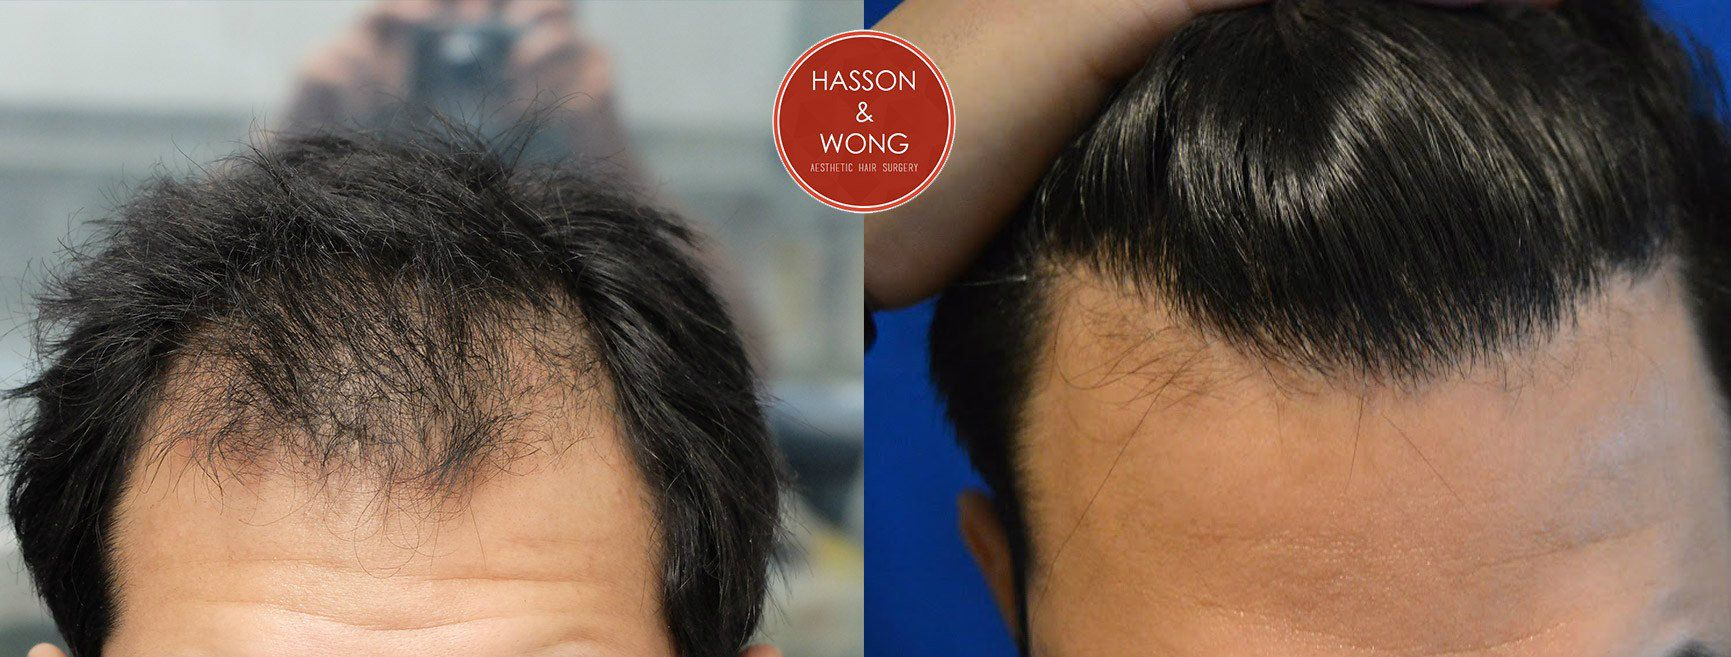 hasson wong hair transplant haircut